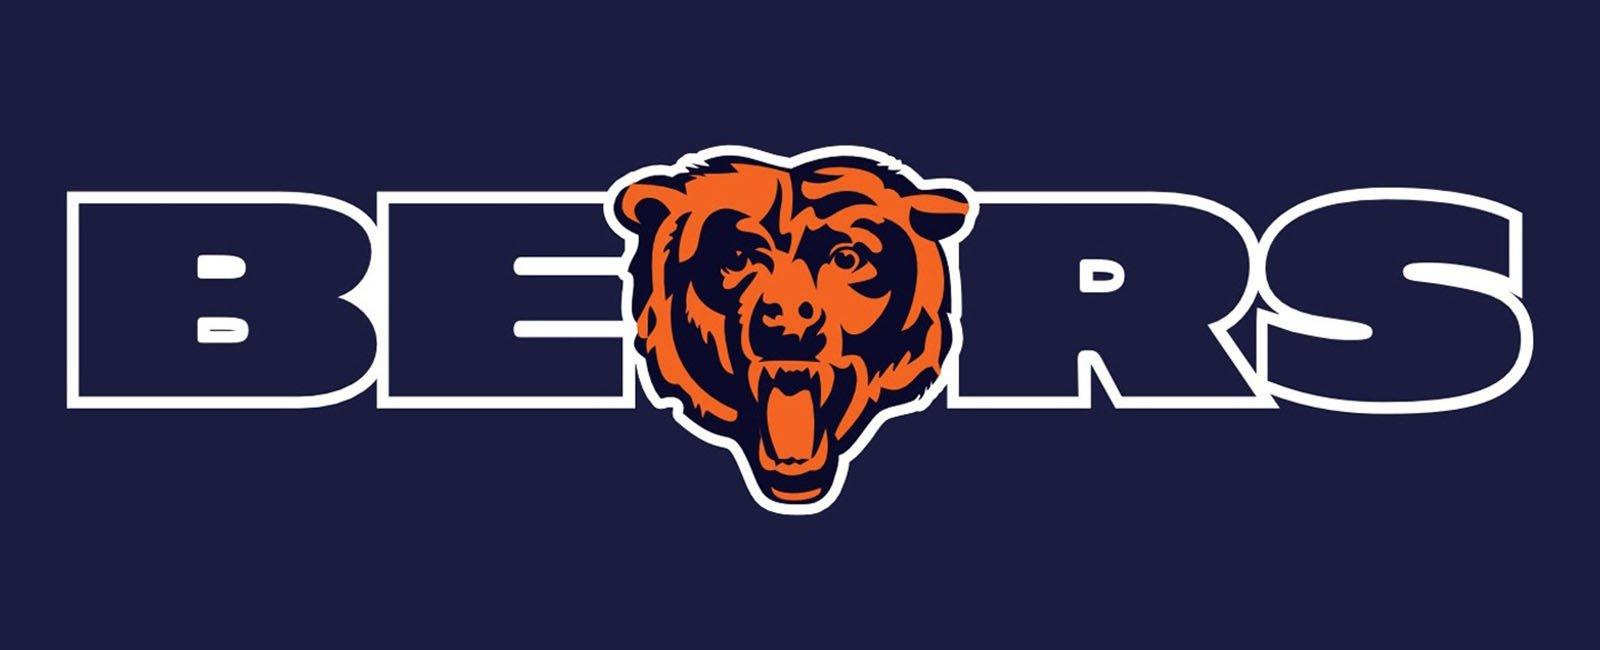 Chicago Bears news from the Chicago Tribune. Read the latest Chicago Bears stories, view photos, watch videos and more.